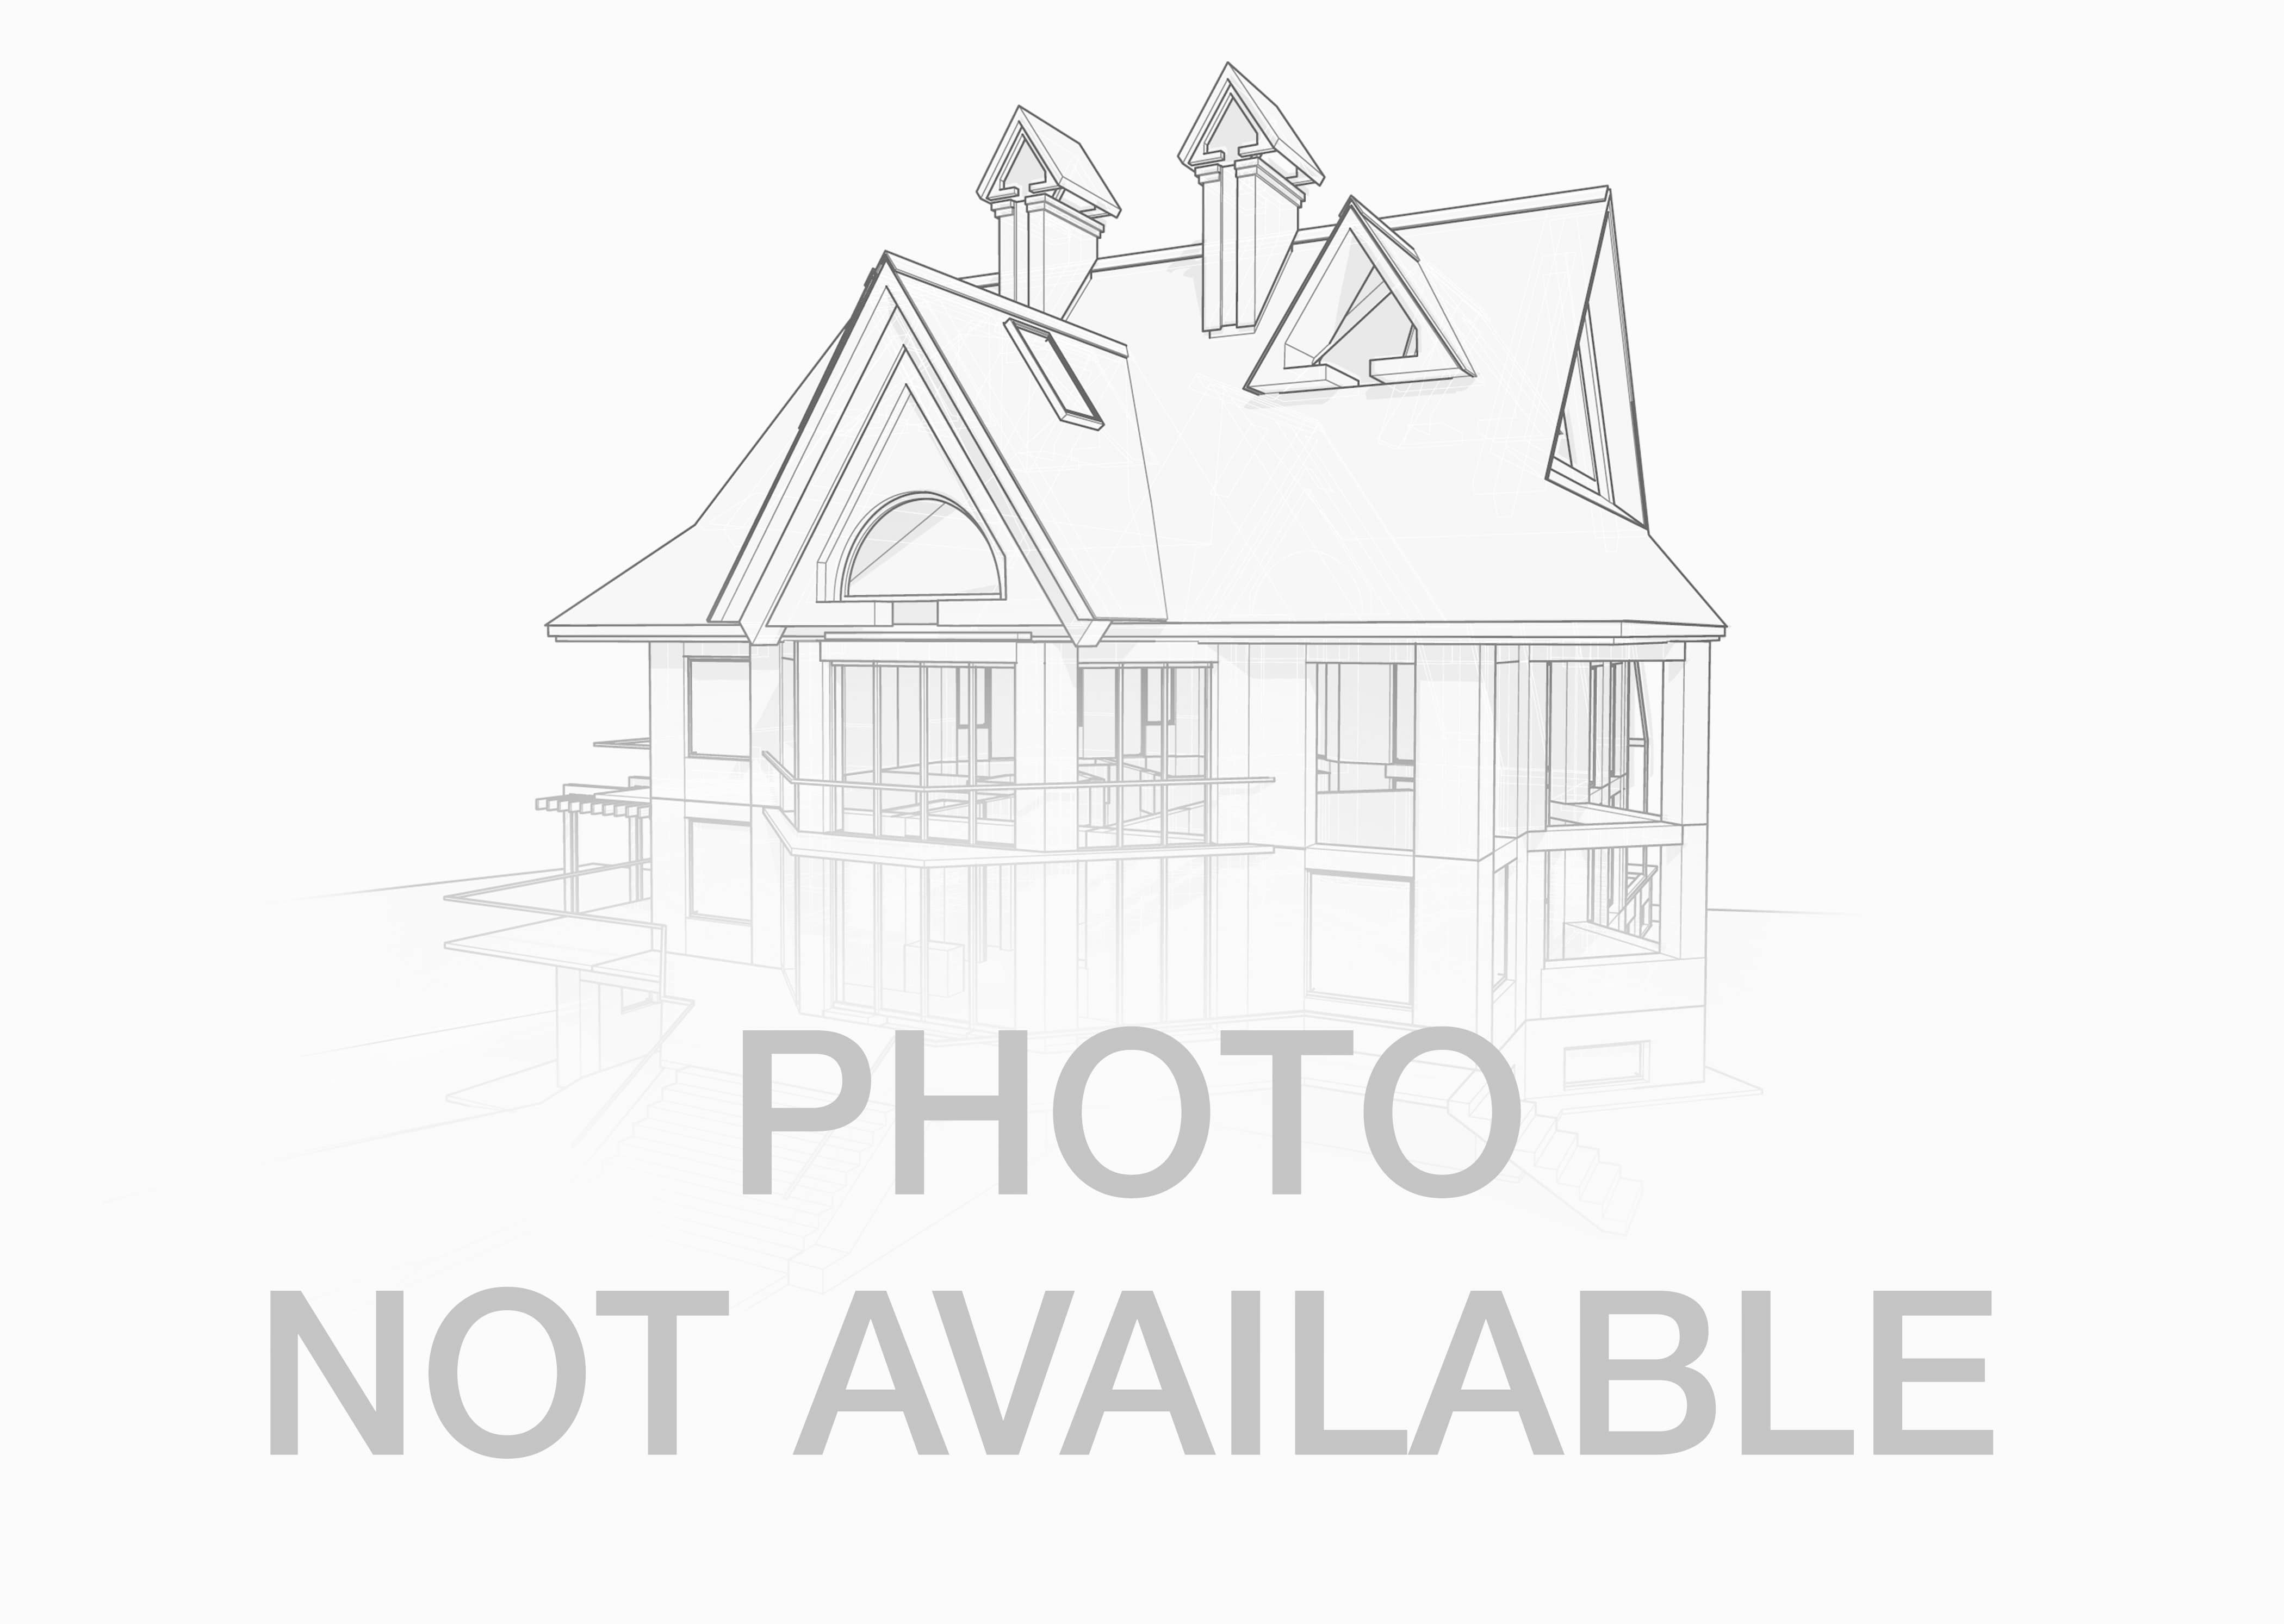 New Listings For Homes For Sale In Cary Nc